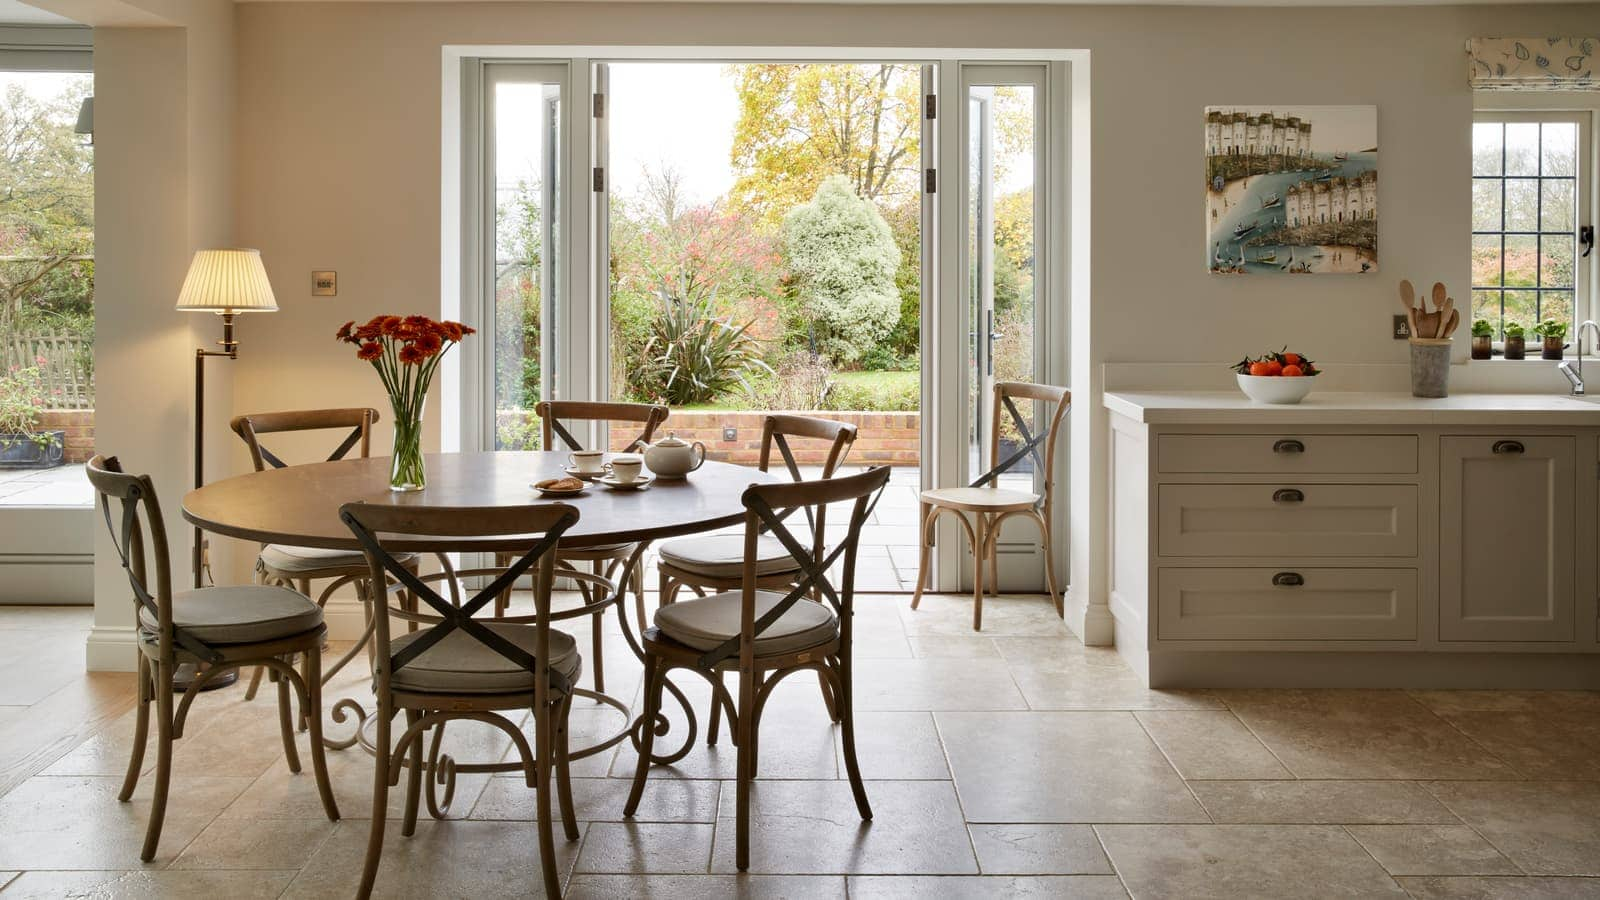 Orangery adjoining the open plan kitchen and dining room